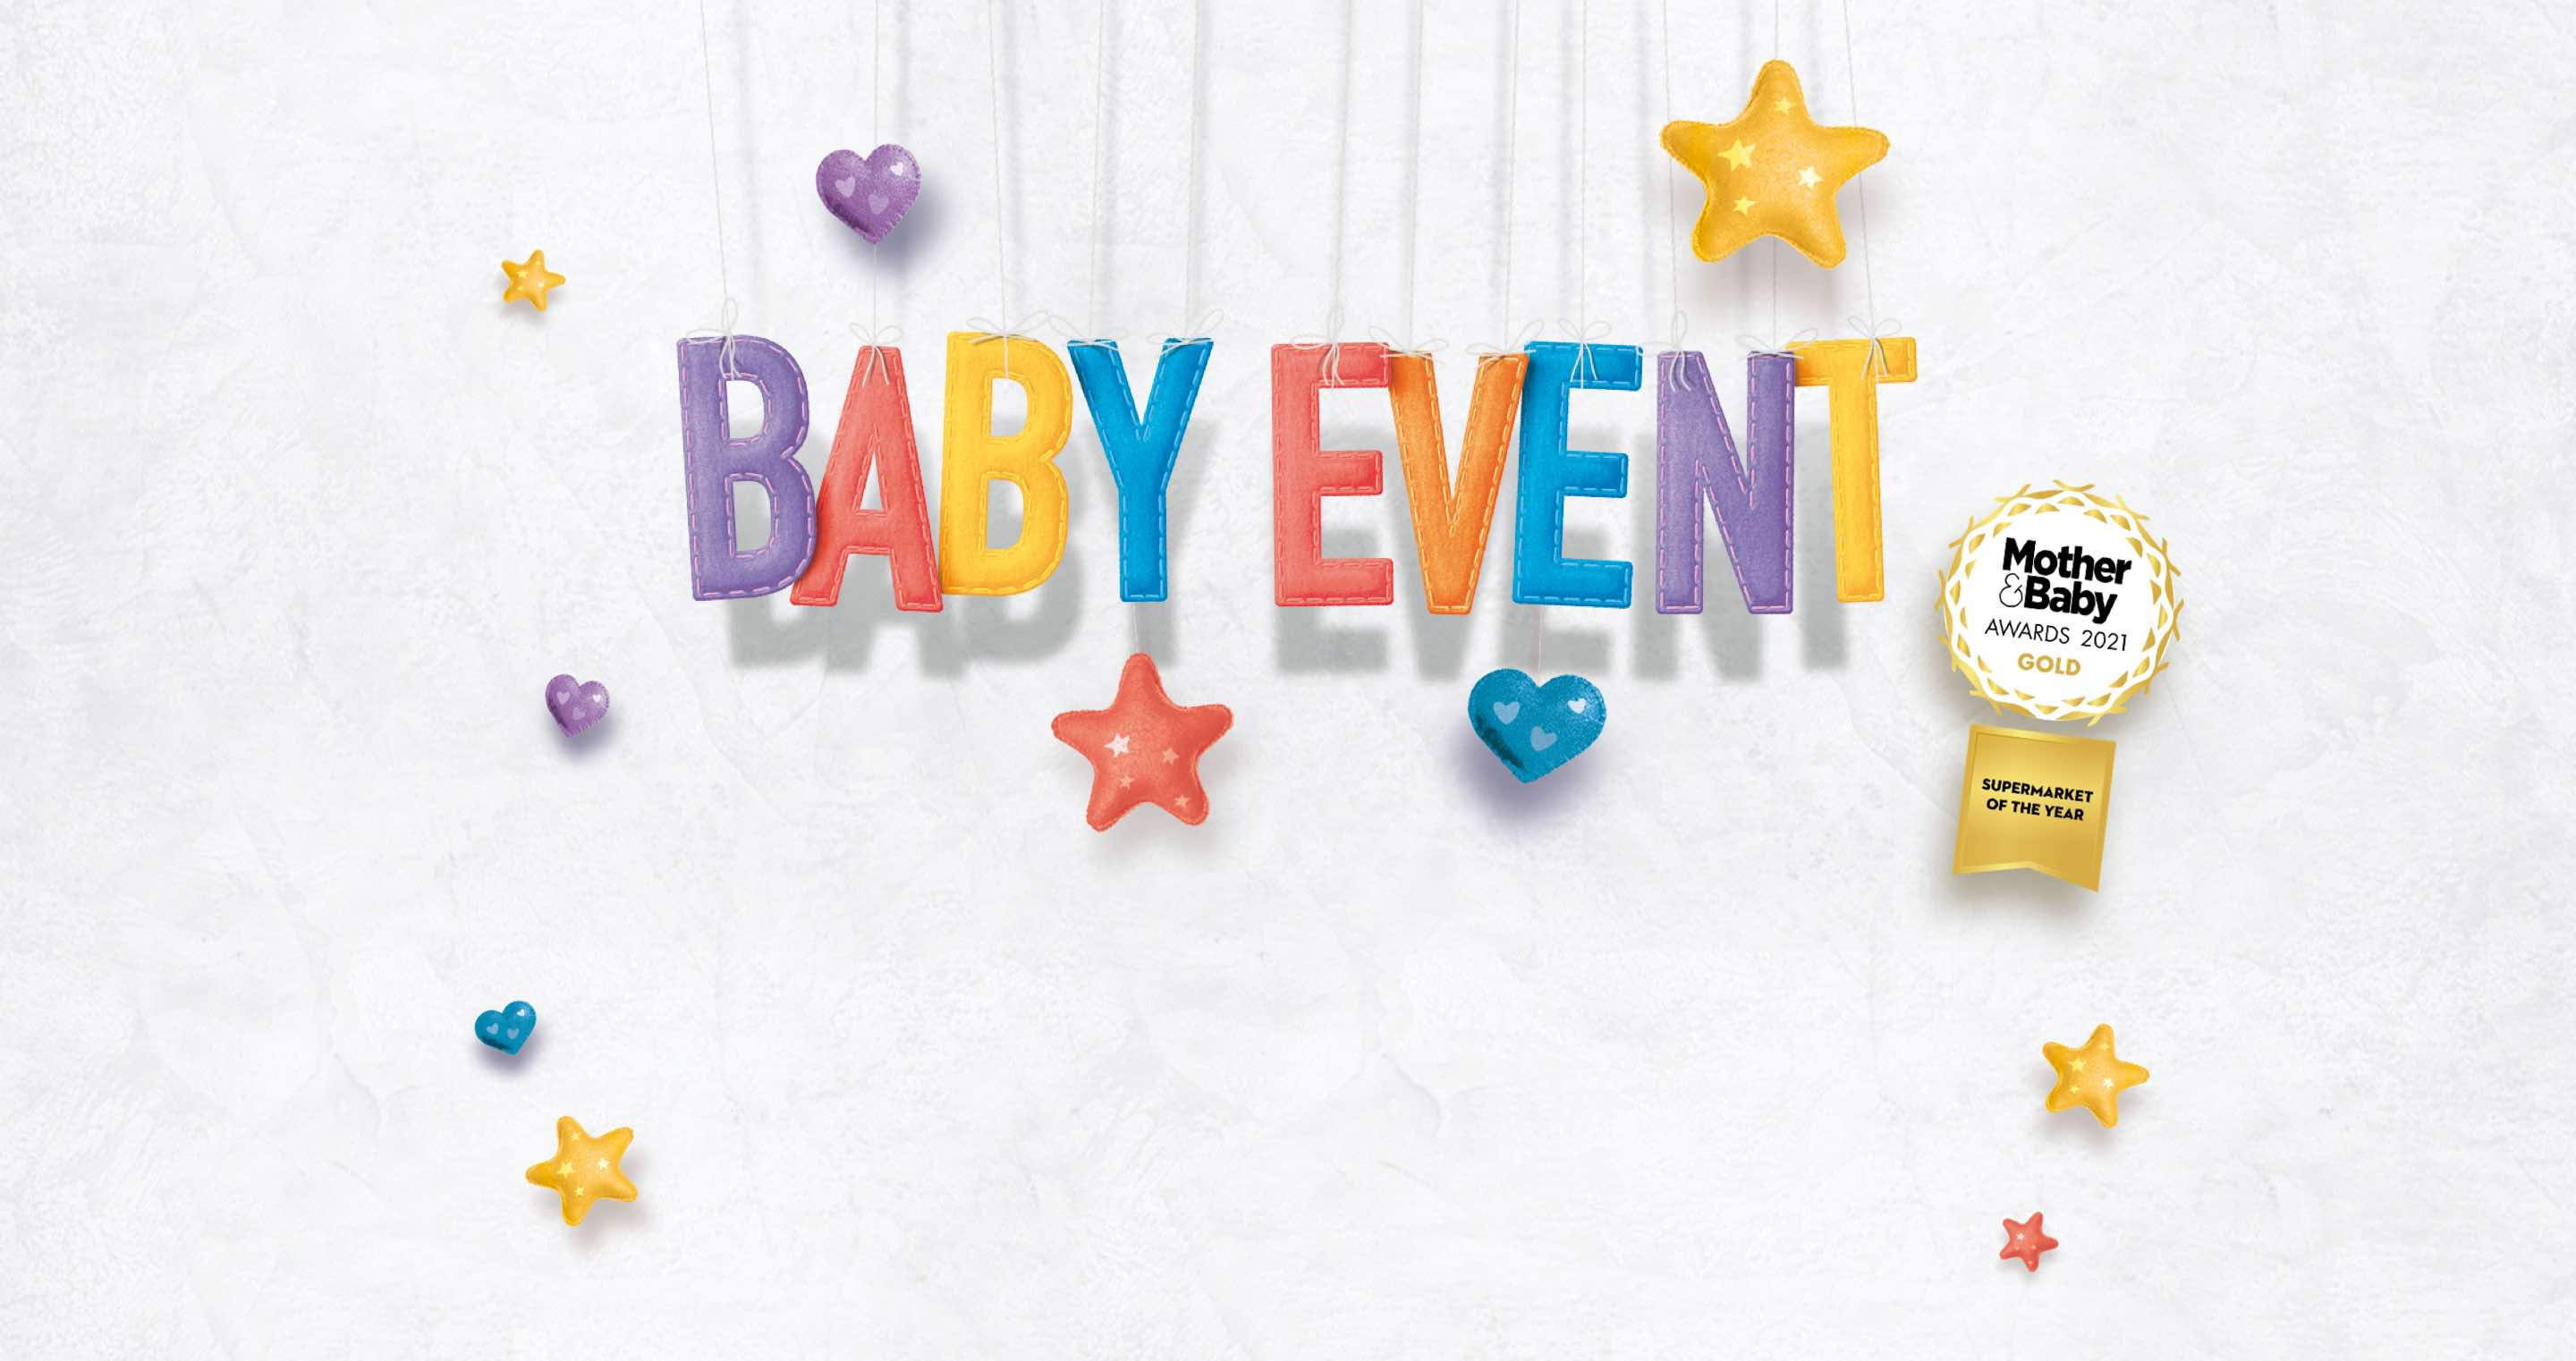 Baby event lock up with stars and hearts with Mother & Baby Awards 2021 gold badge.